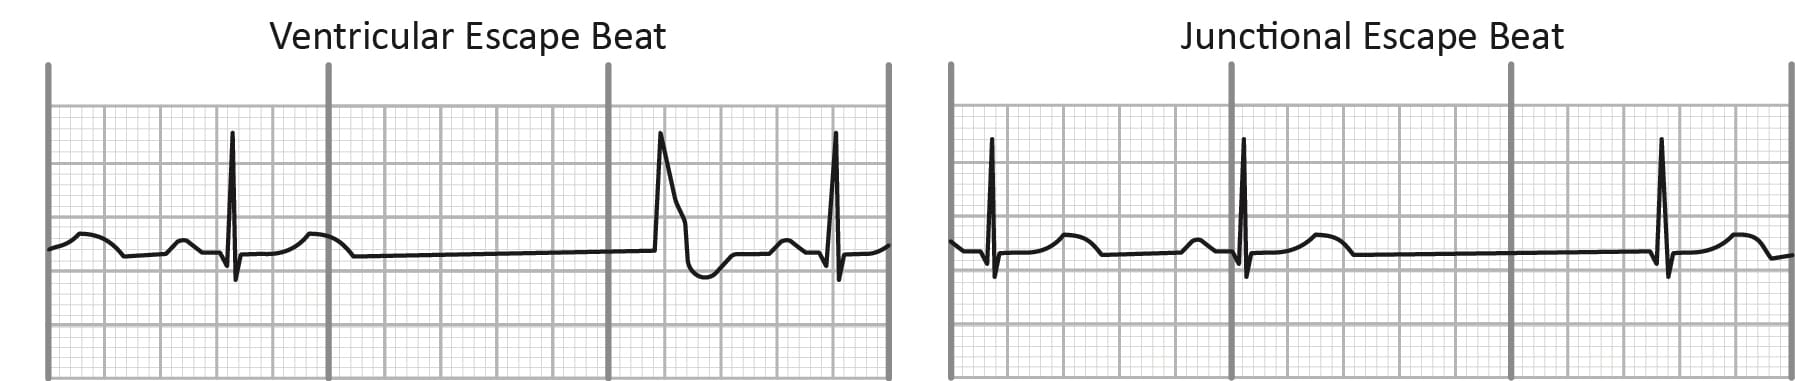 Ventricular and junctional escape beats on EKG